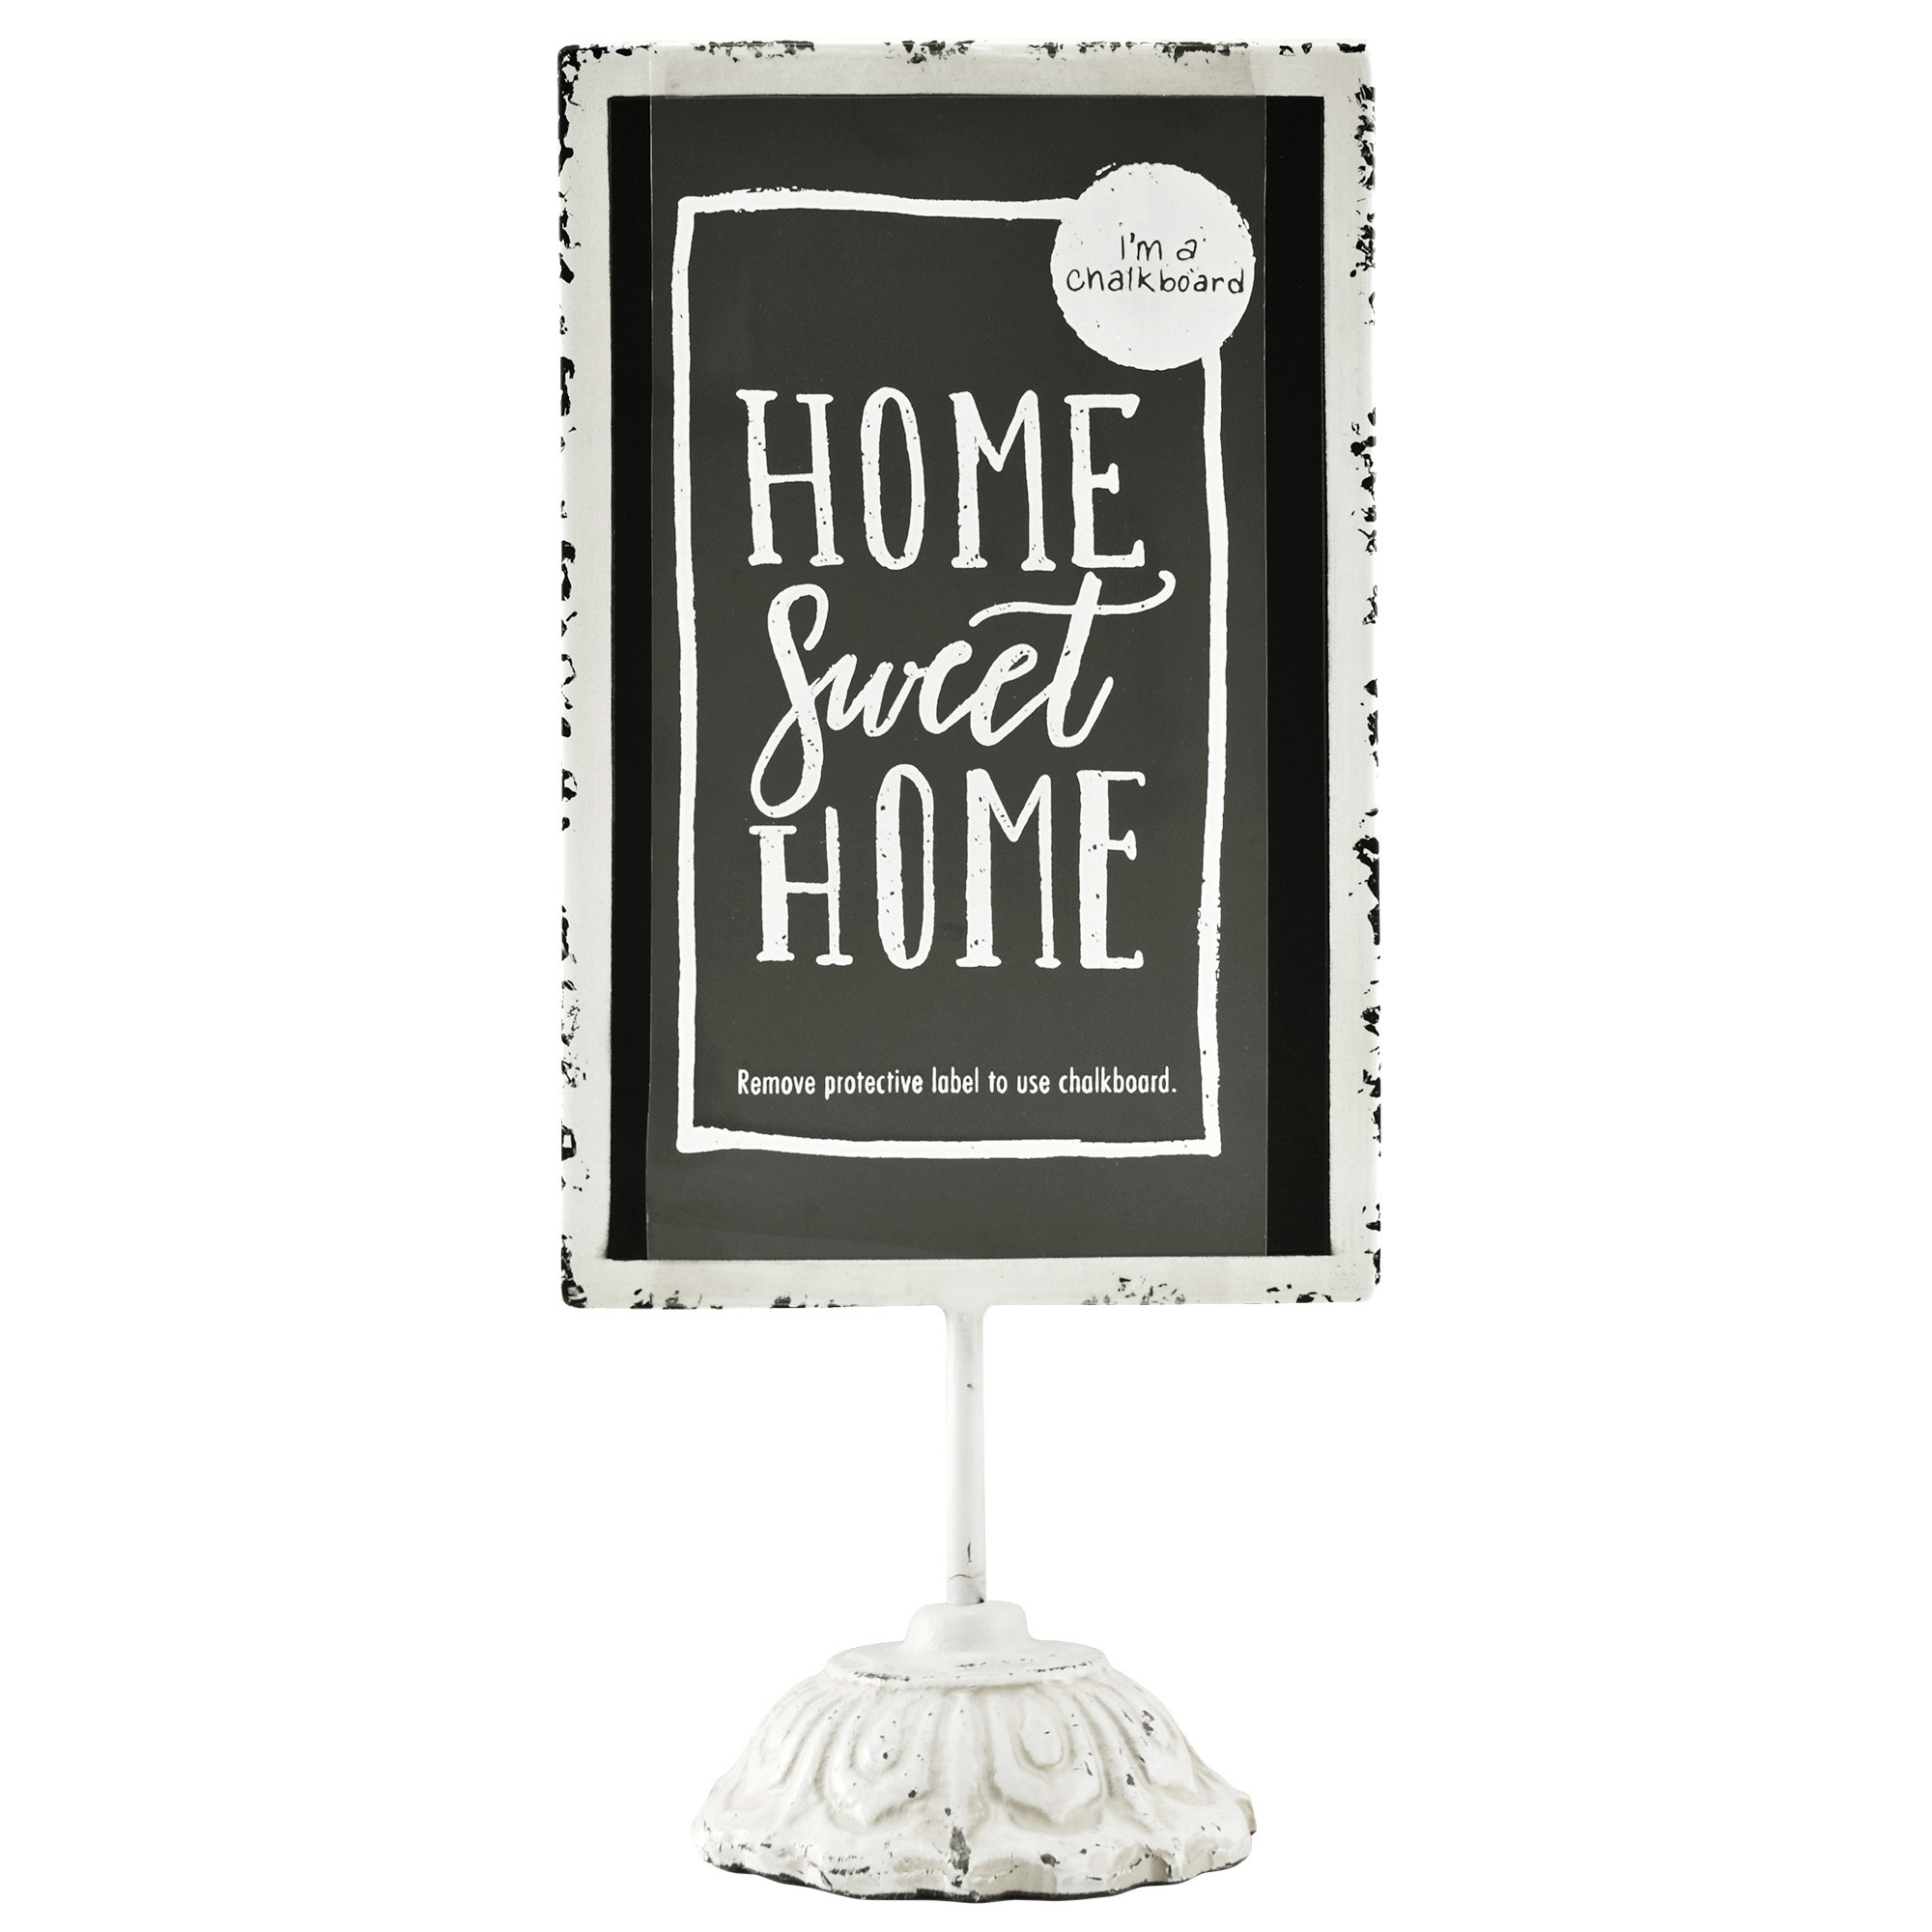 """The chalkboard with the phrase """"Home sweet home"""" written on it"""